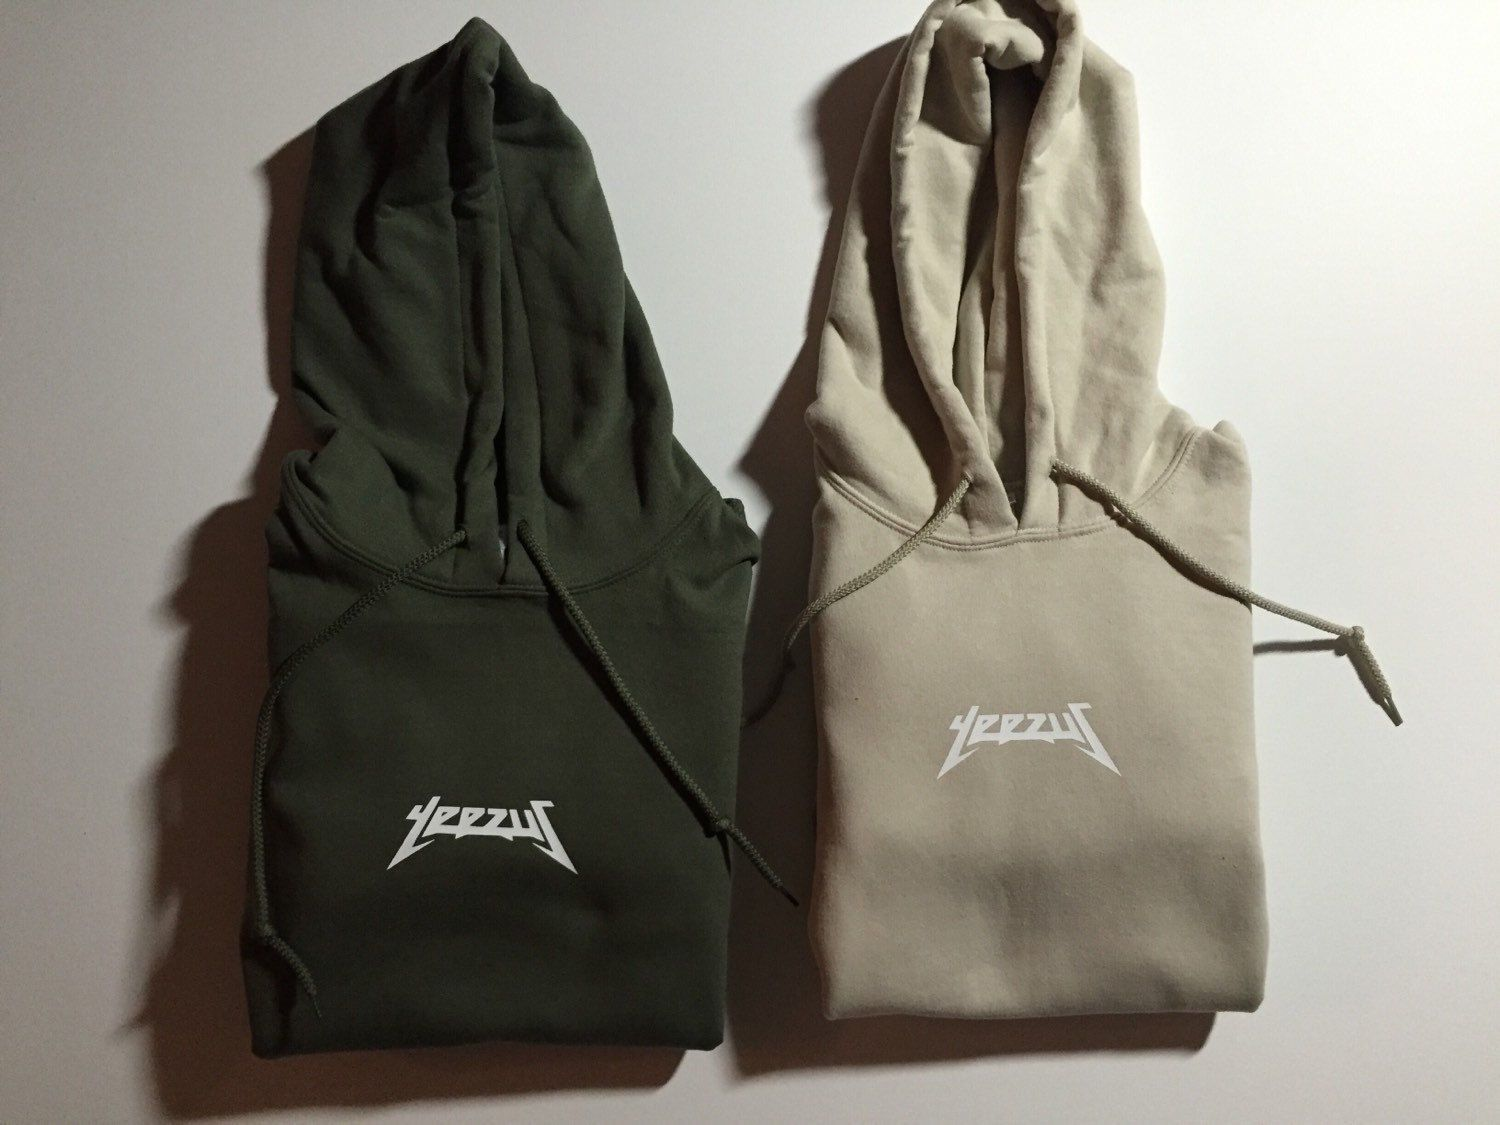 ff07cb00b2716 KANYE WEST YEEZUS NEW LOGO HOODIE in Clothes